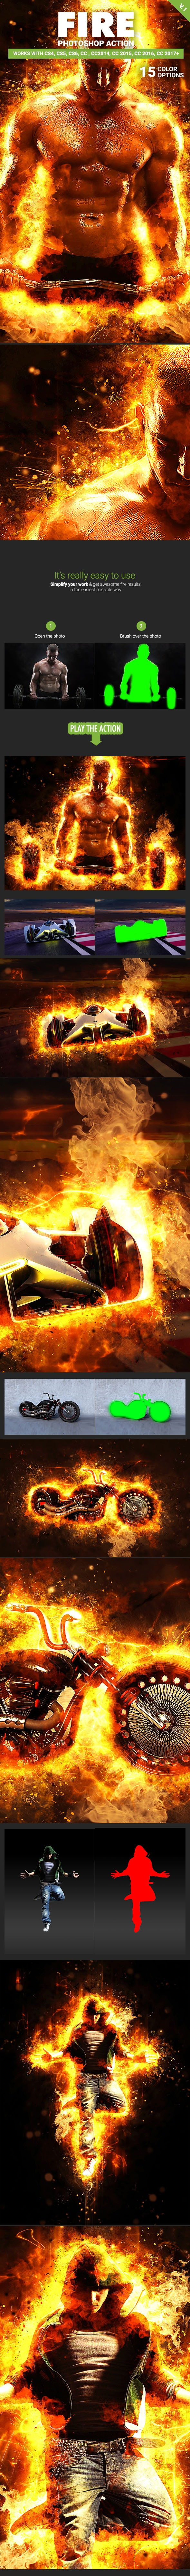 Fire Photoshop Action V 1 by SmartestMind | GraphicRiver